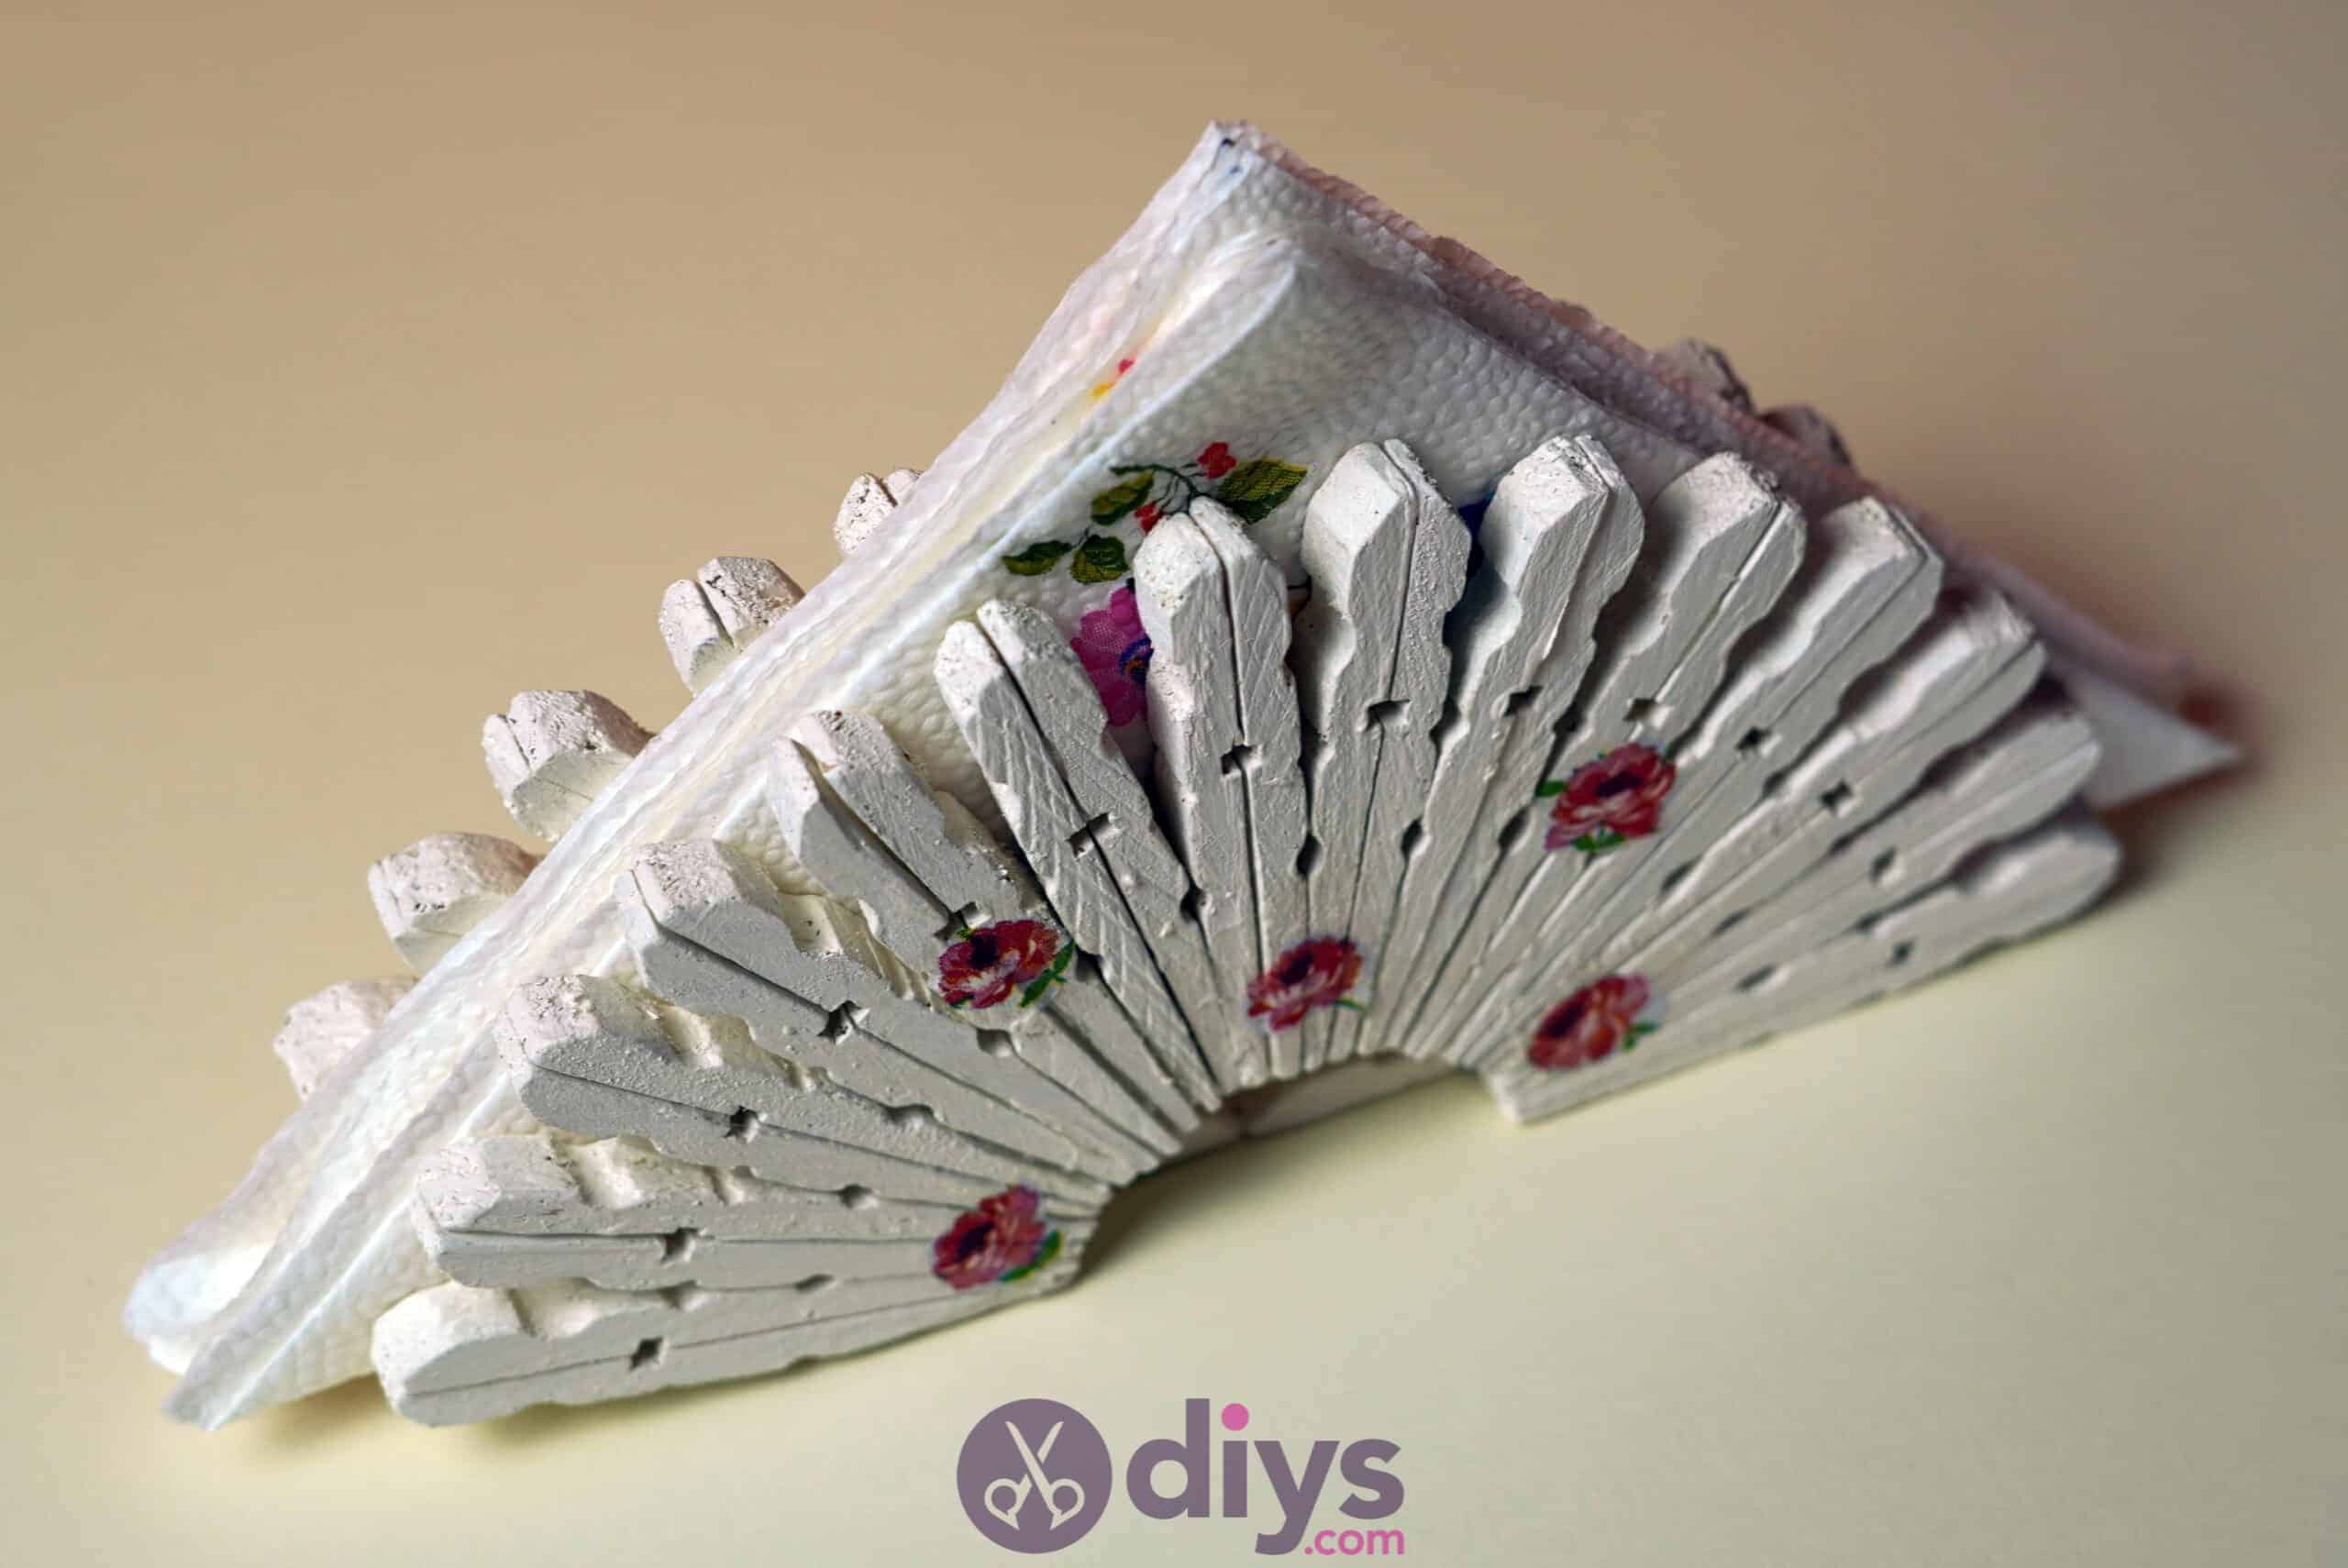 Diy clothespin napkin holder painted